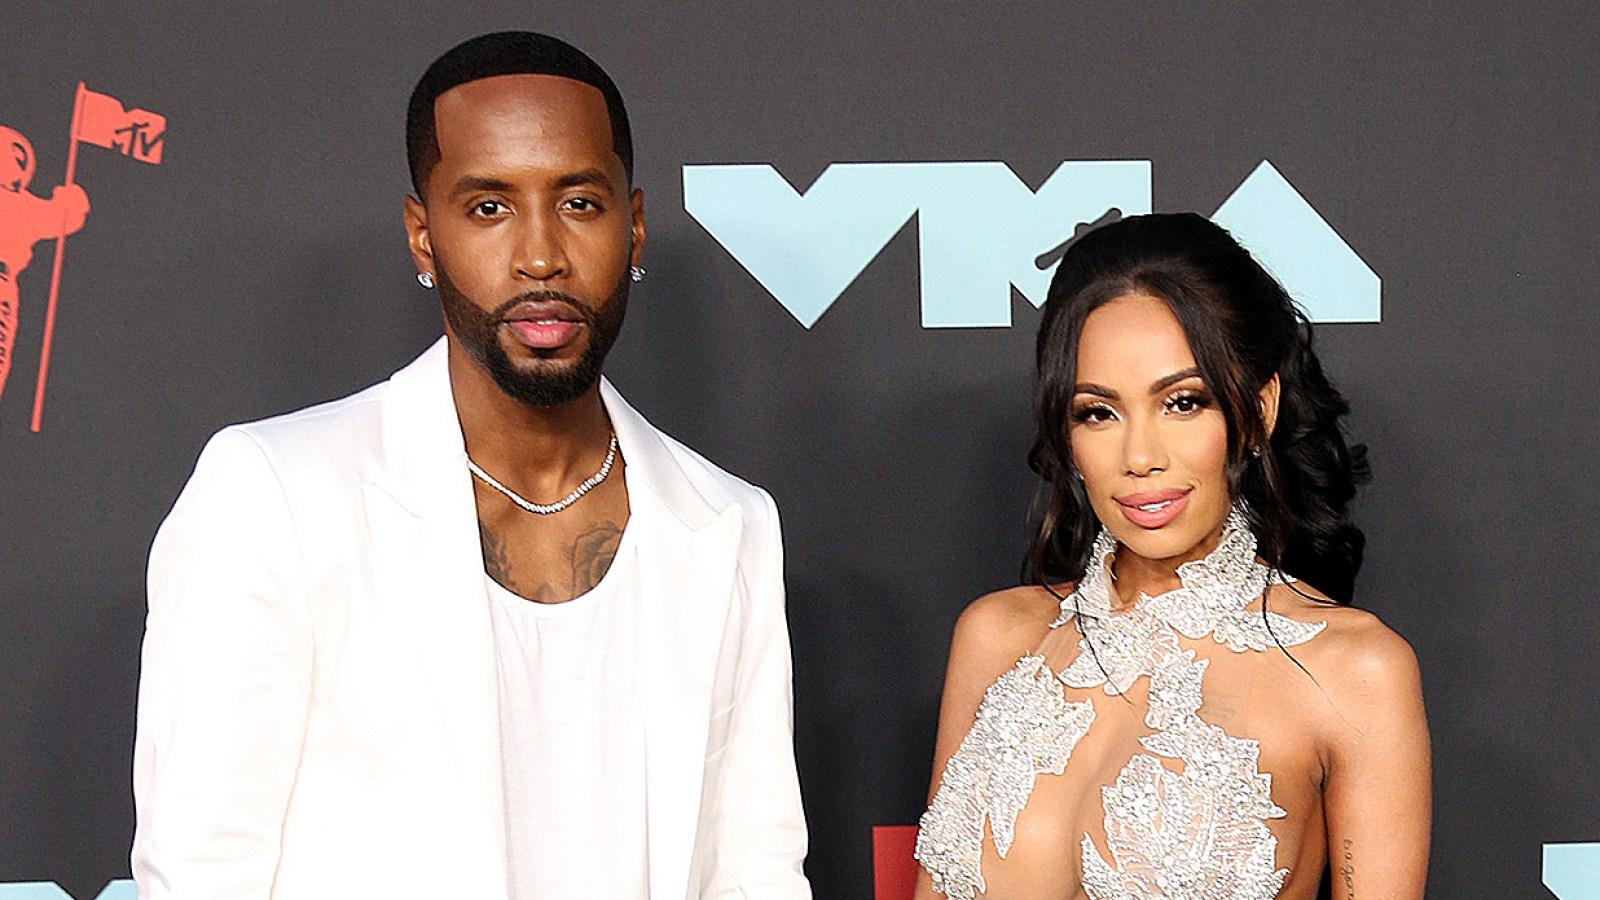 Erica Mena And Safaree Share The Most Romantic Advice With Their Fans Inspired By The Movie 'The Photograph'